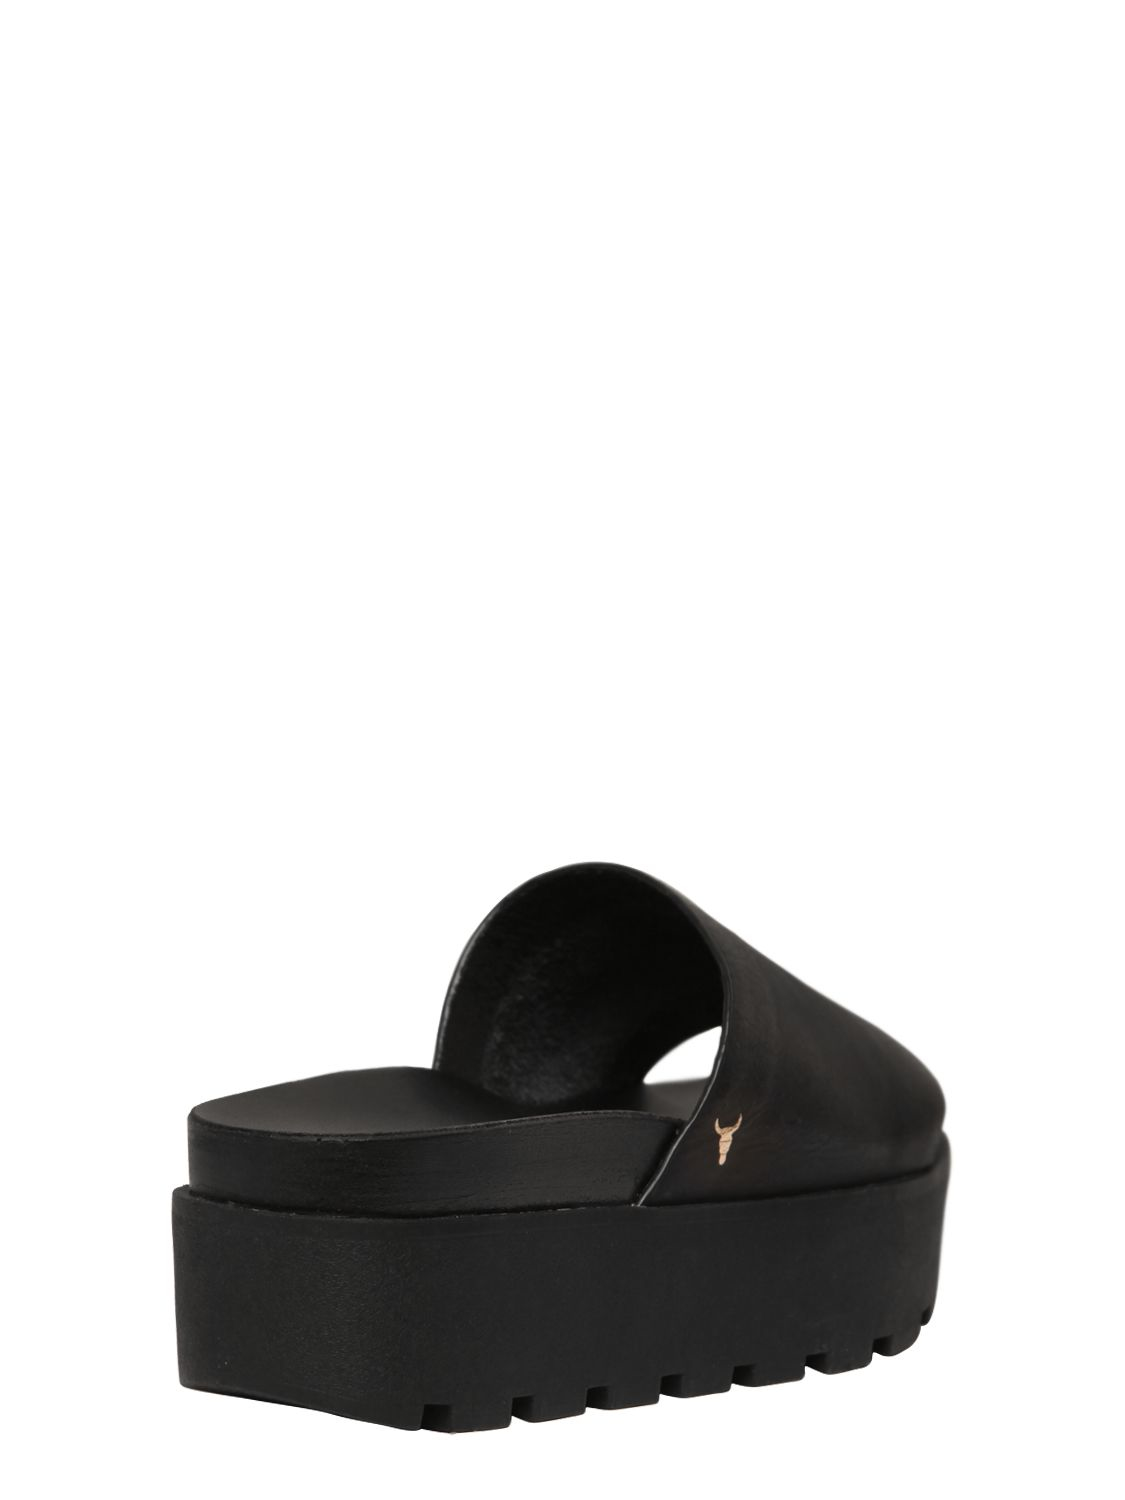 Windsor Smith Leather Platform Slides In Black Lyst